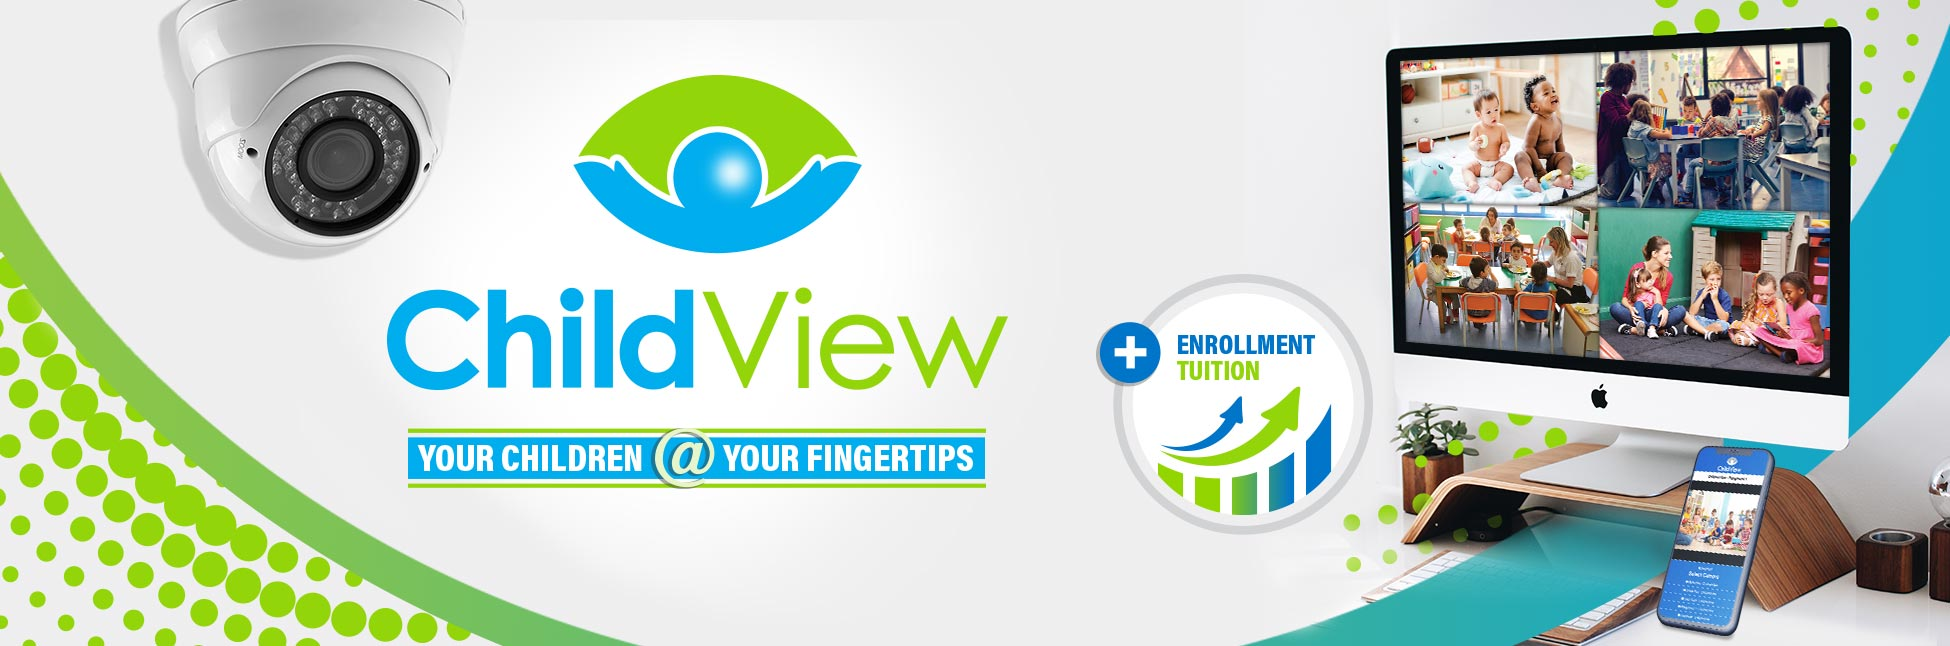 ChildView project by Studio 9017